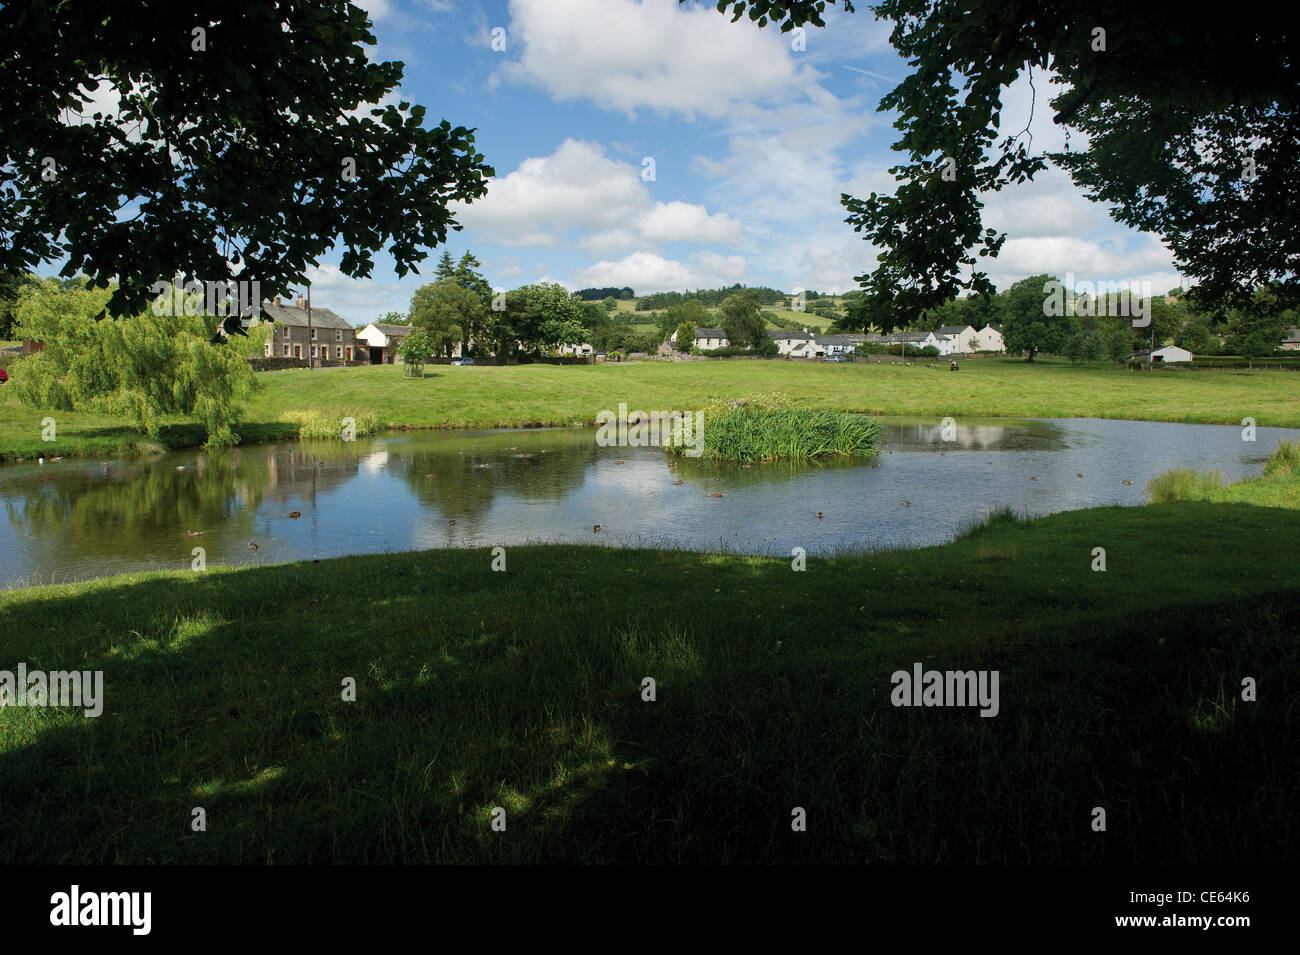 Der Ententeich in Caldbeck Cumbrian Dorf Lake District UK English Countryside Stockbild